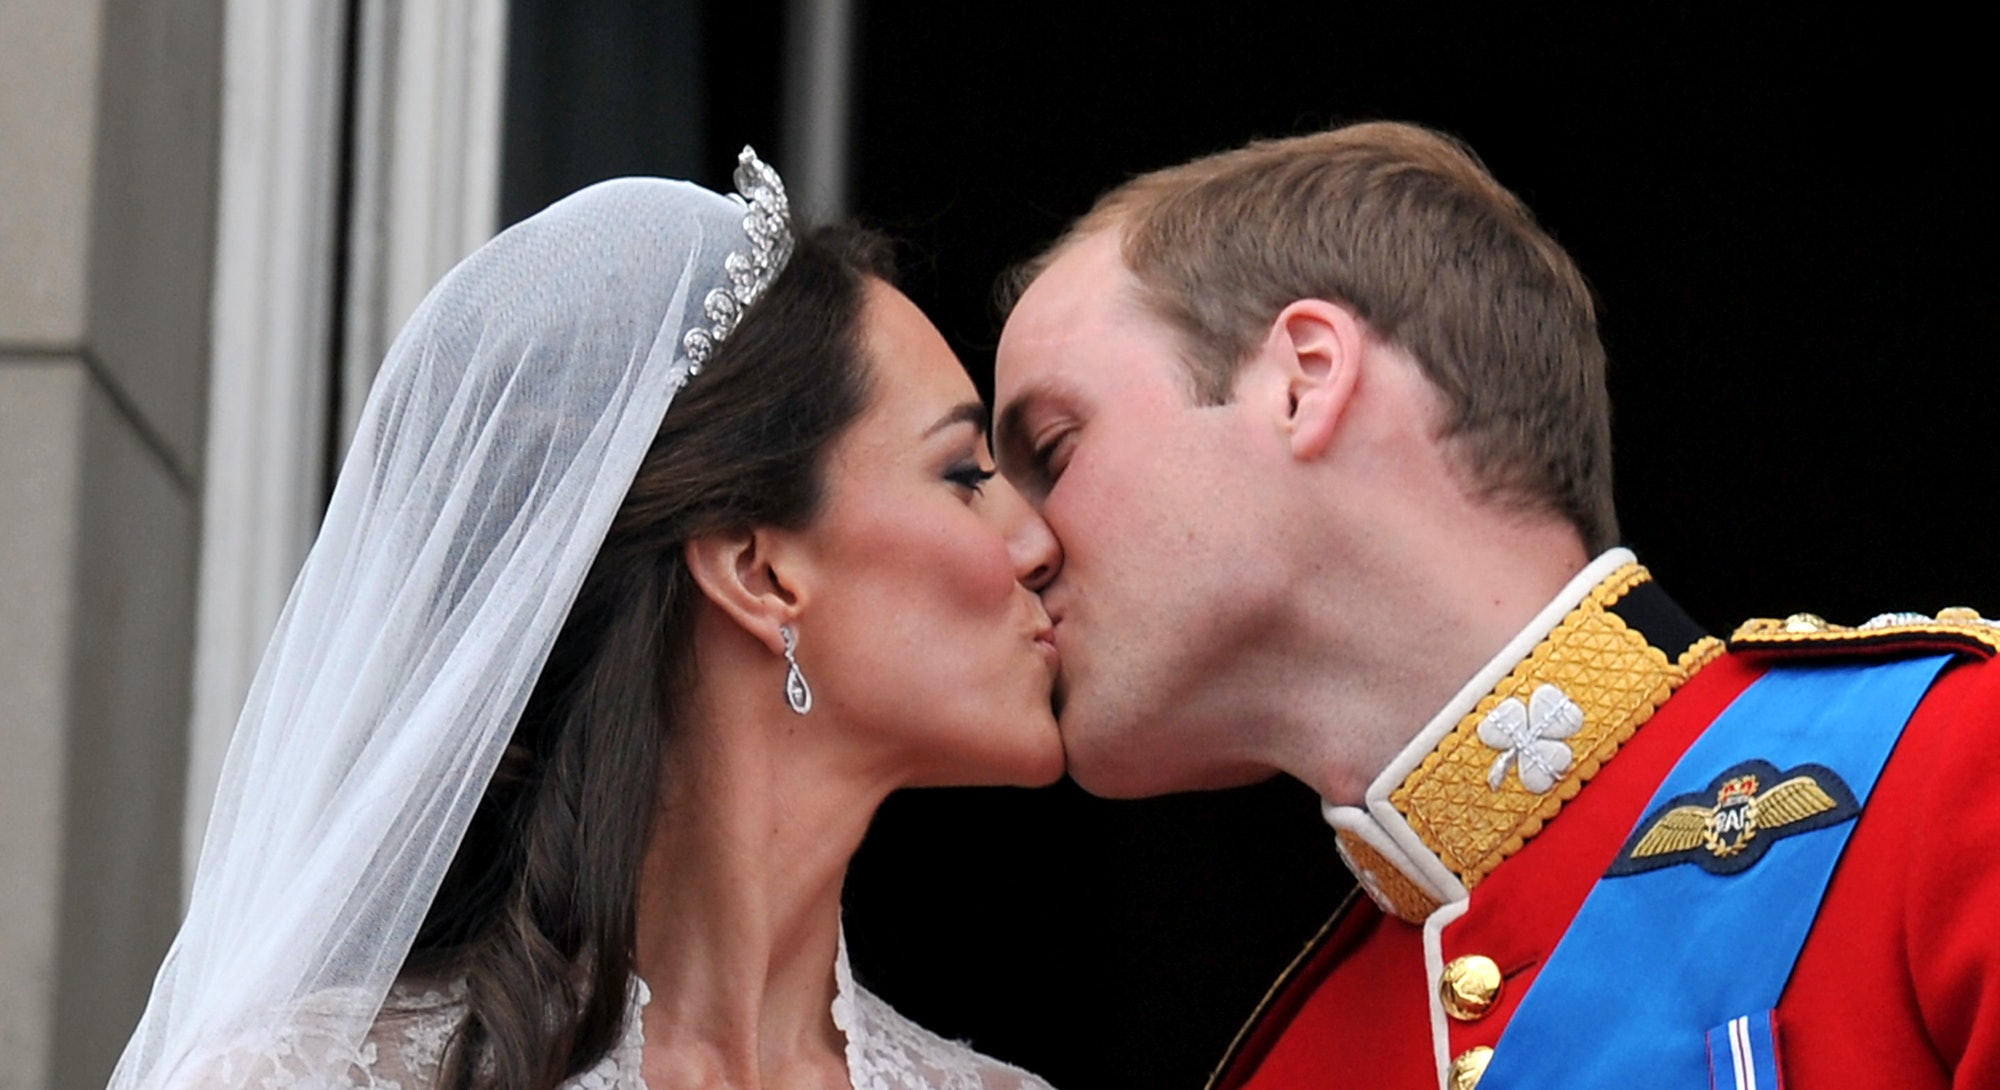 Prince William and his wife Kate Middleton, who has been given the title of The Duchess of Cambridge...